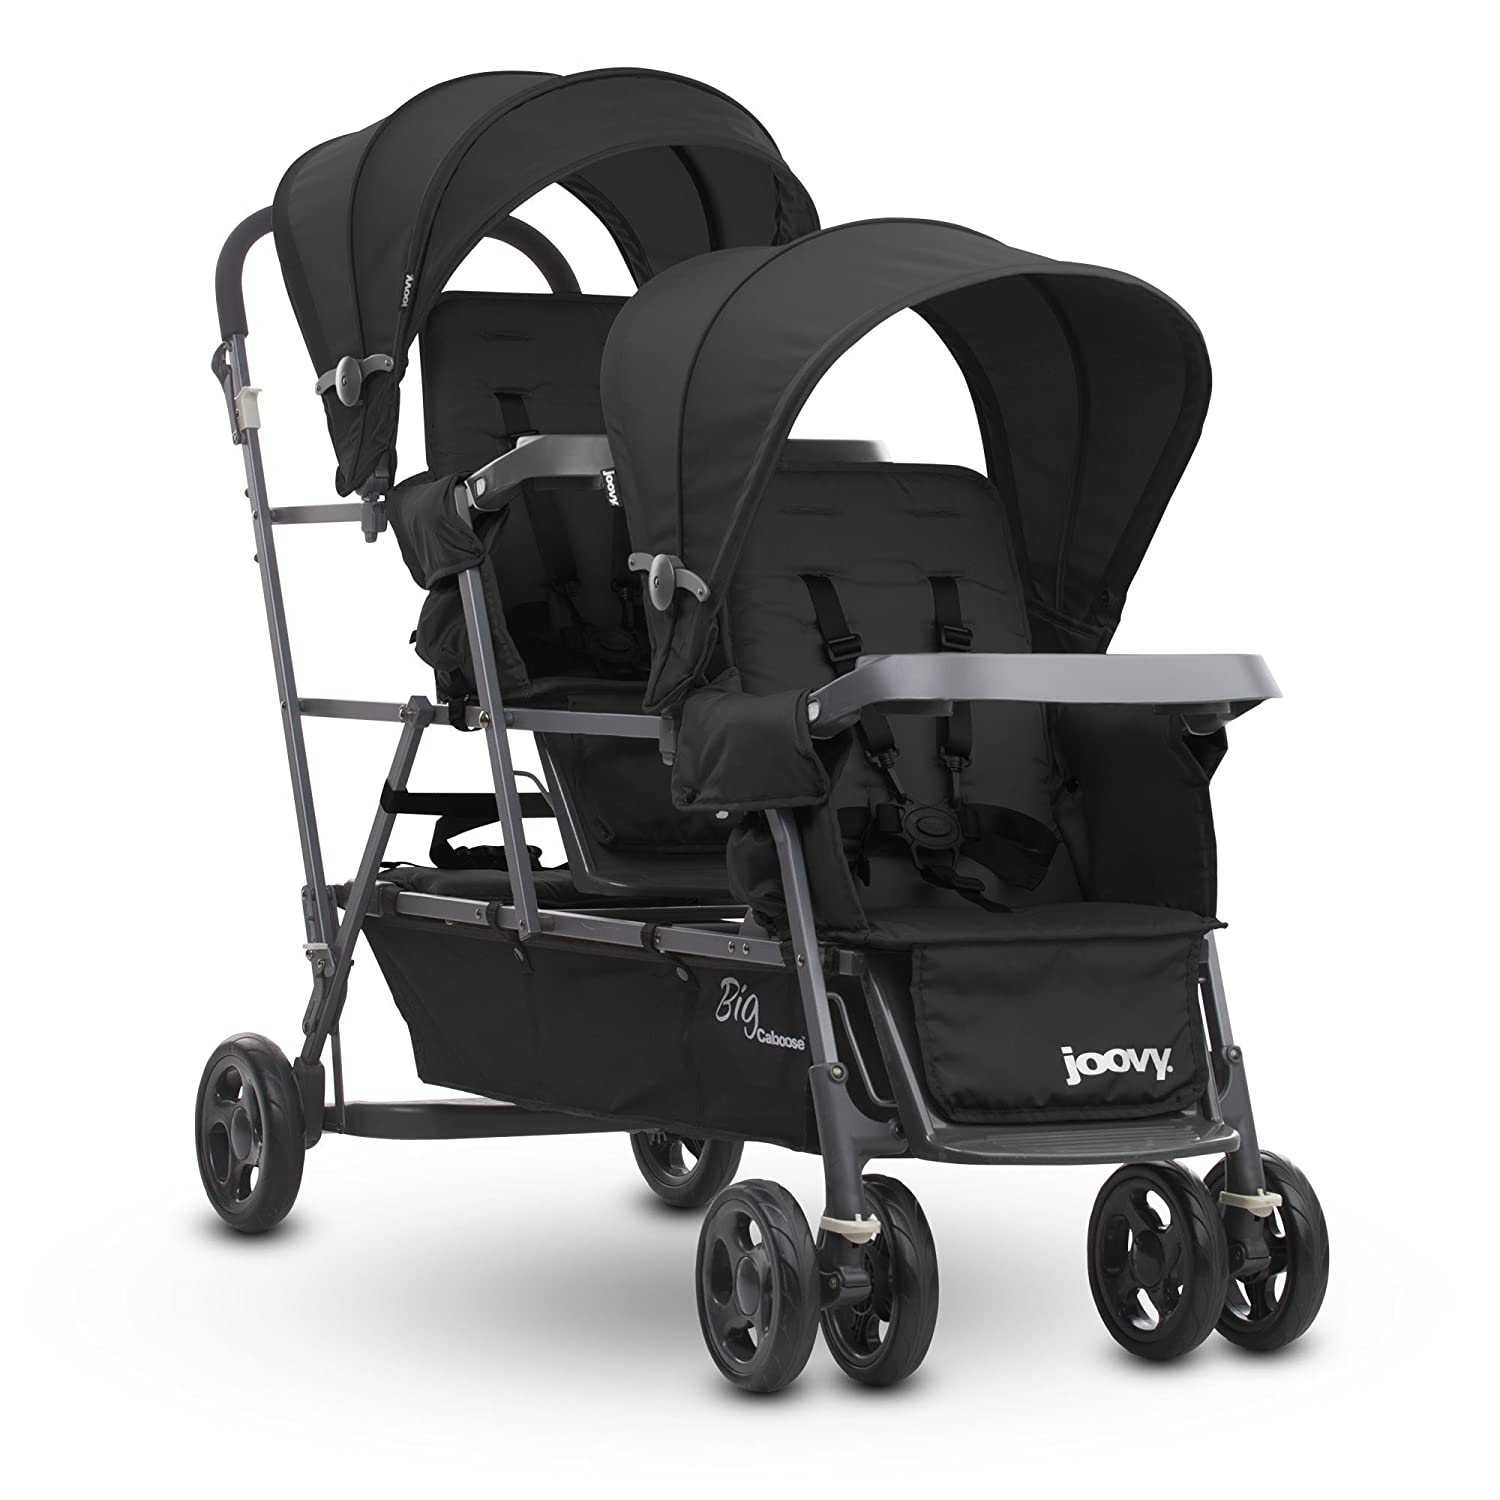 Top 7 Best Tandem Strollers Reviews in 2020 7